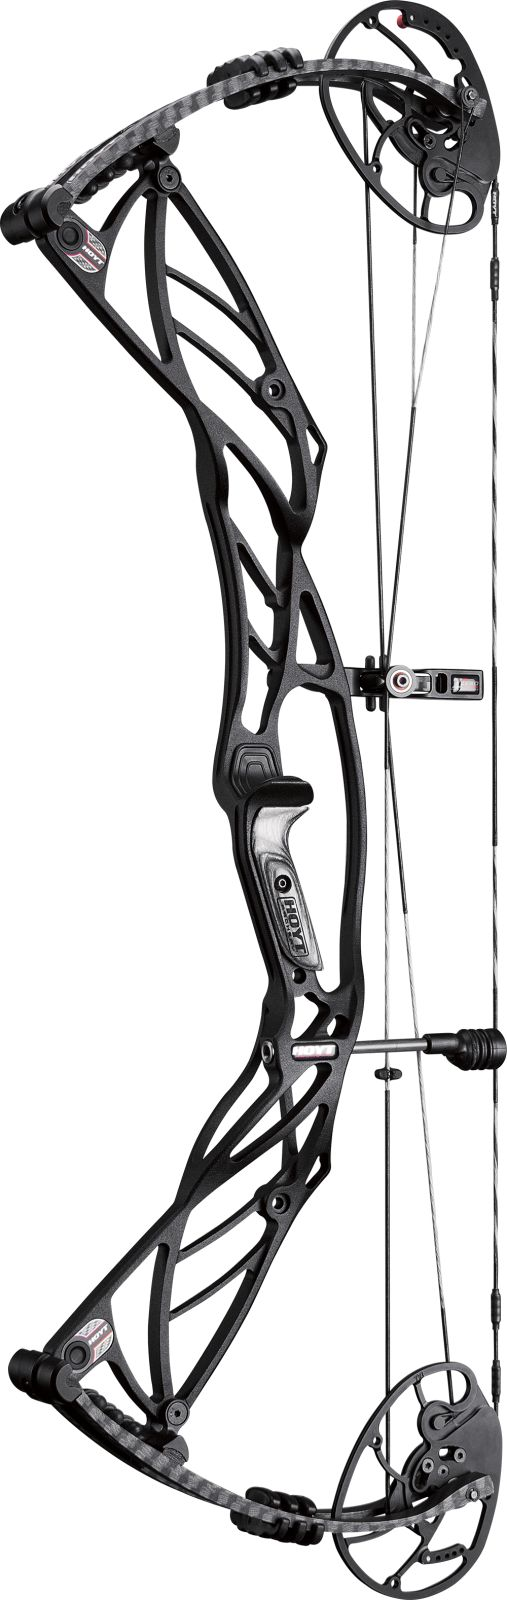 Defying all odds. 2016 Hoyt Defiant 34 (Blacked Out)